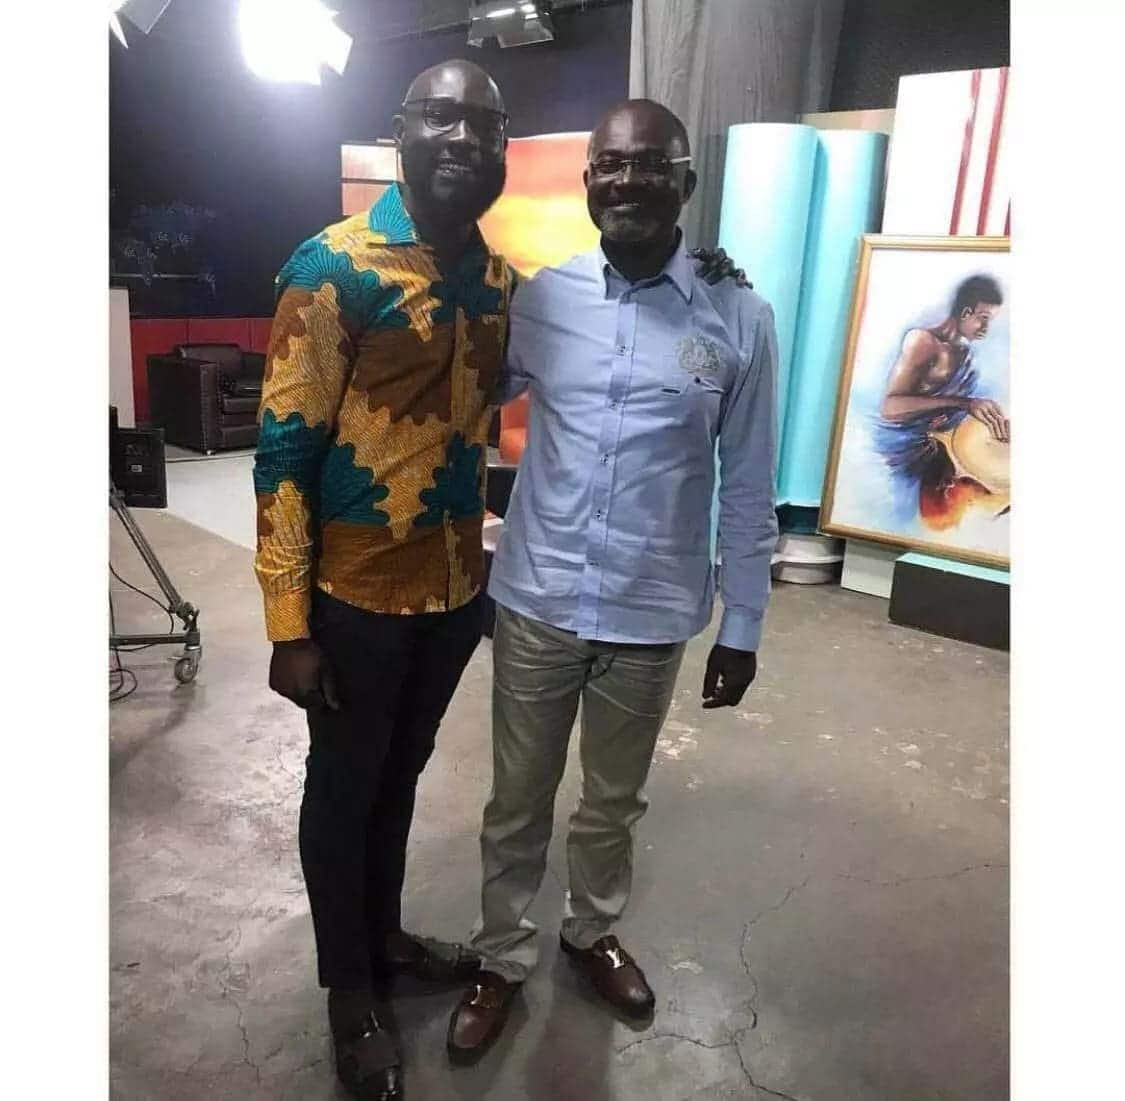 Meet Kenneth Agyapong, the millionaire son of Kennedy Agyapong